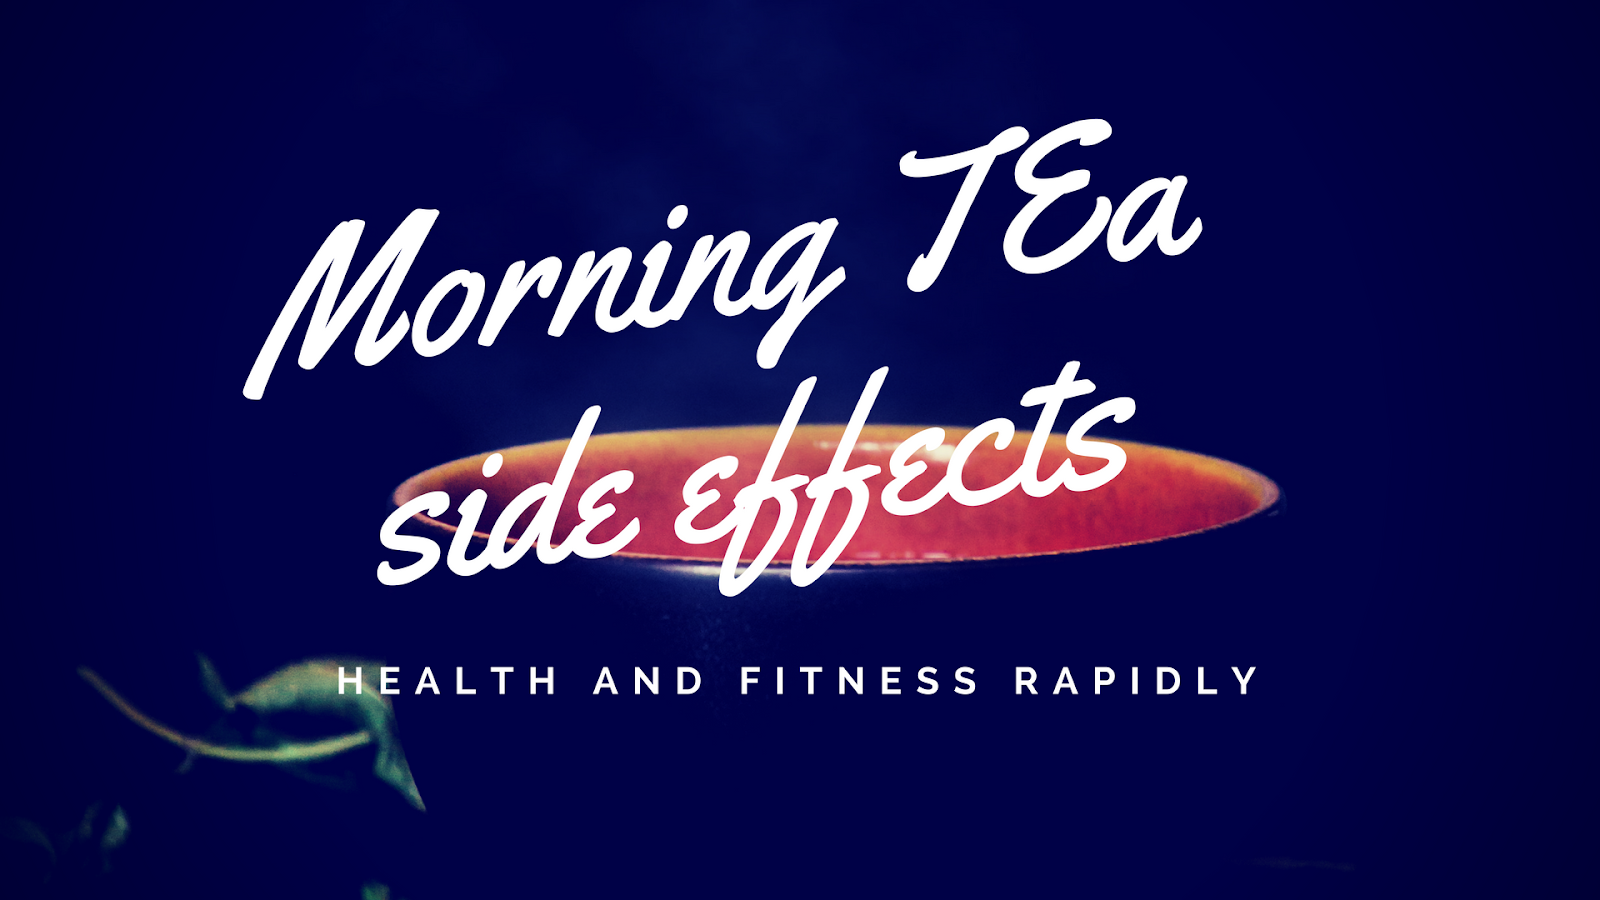 Morning tea side effects